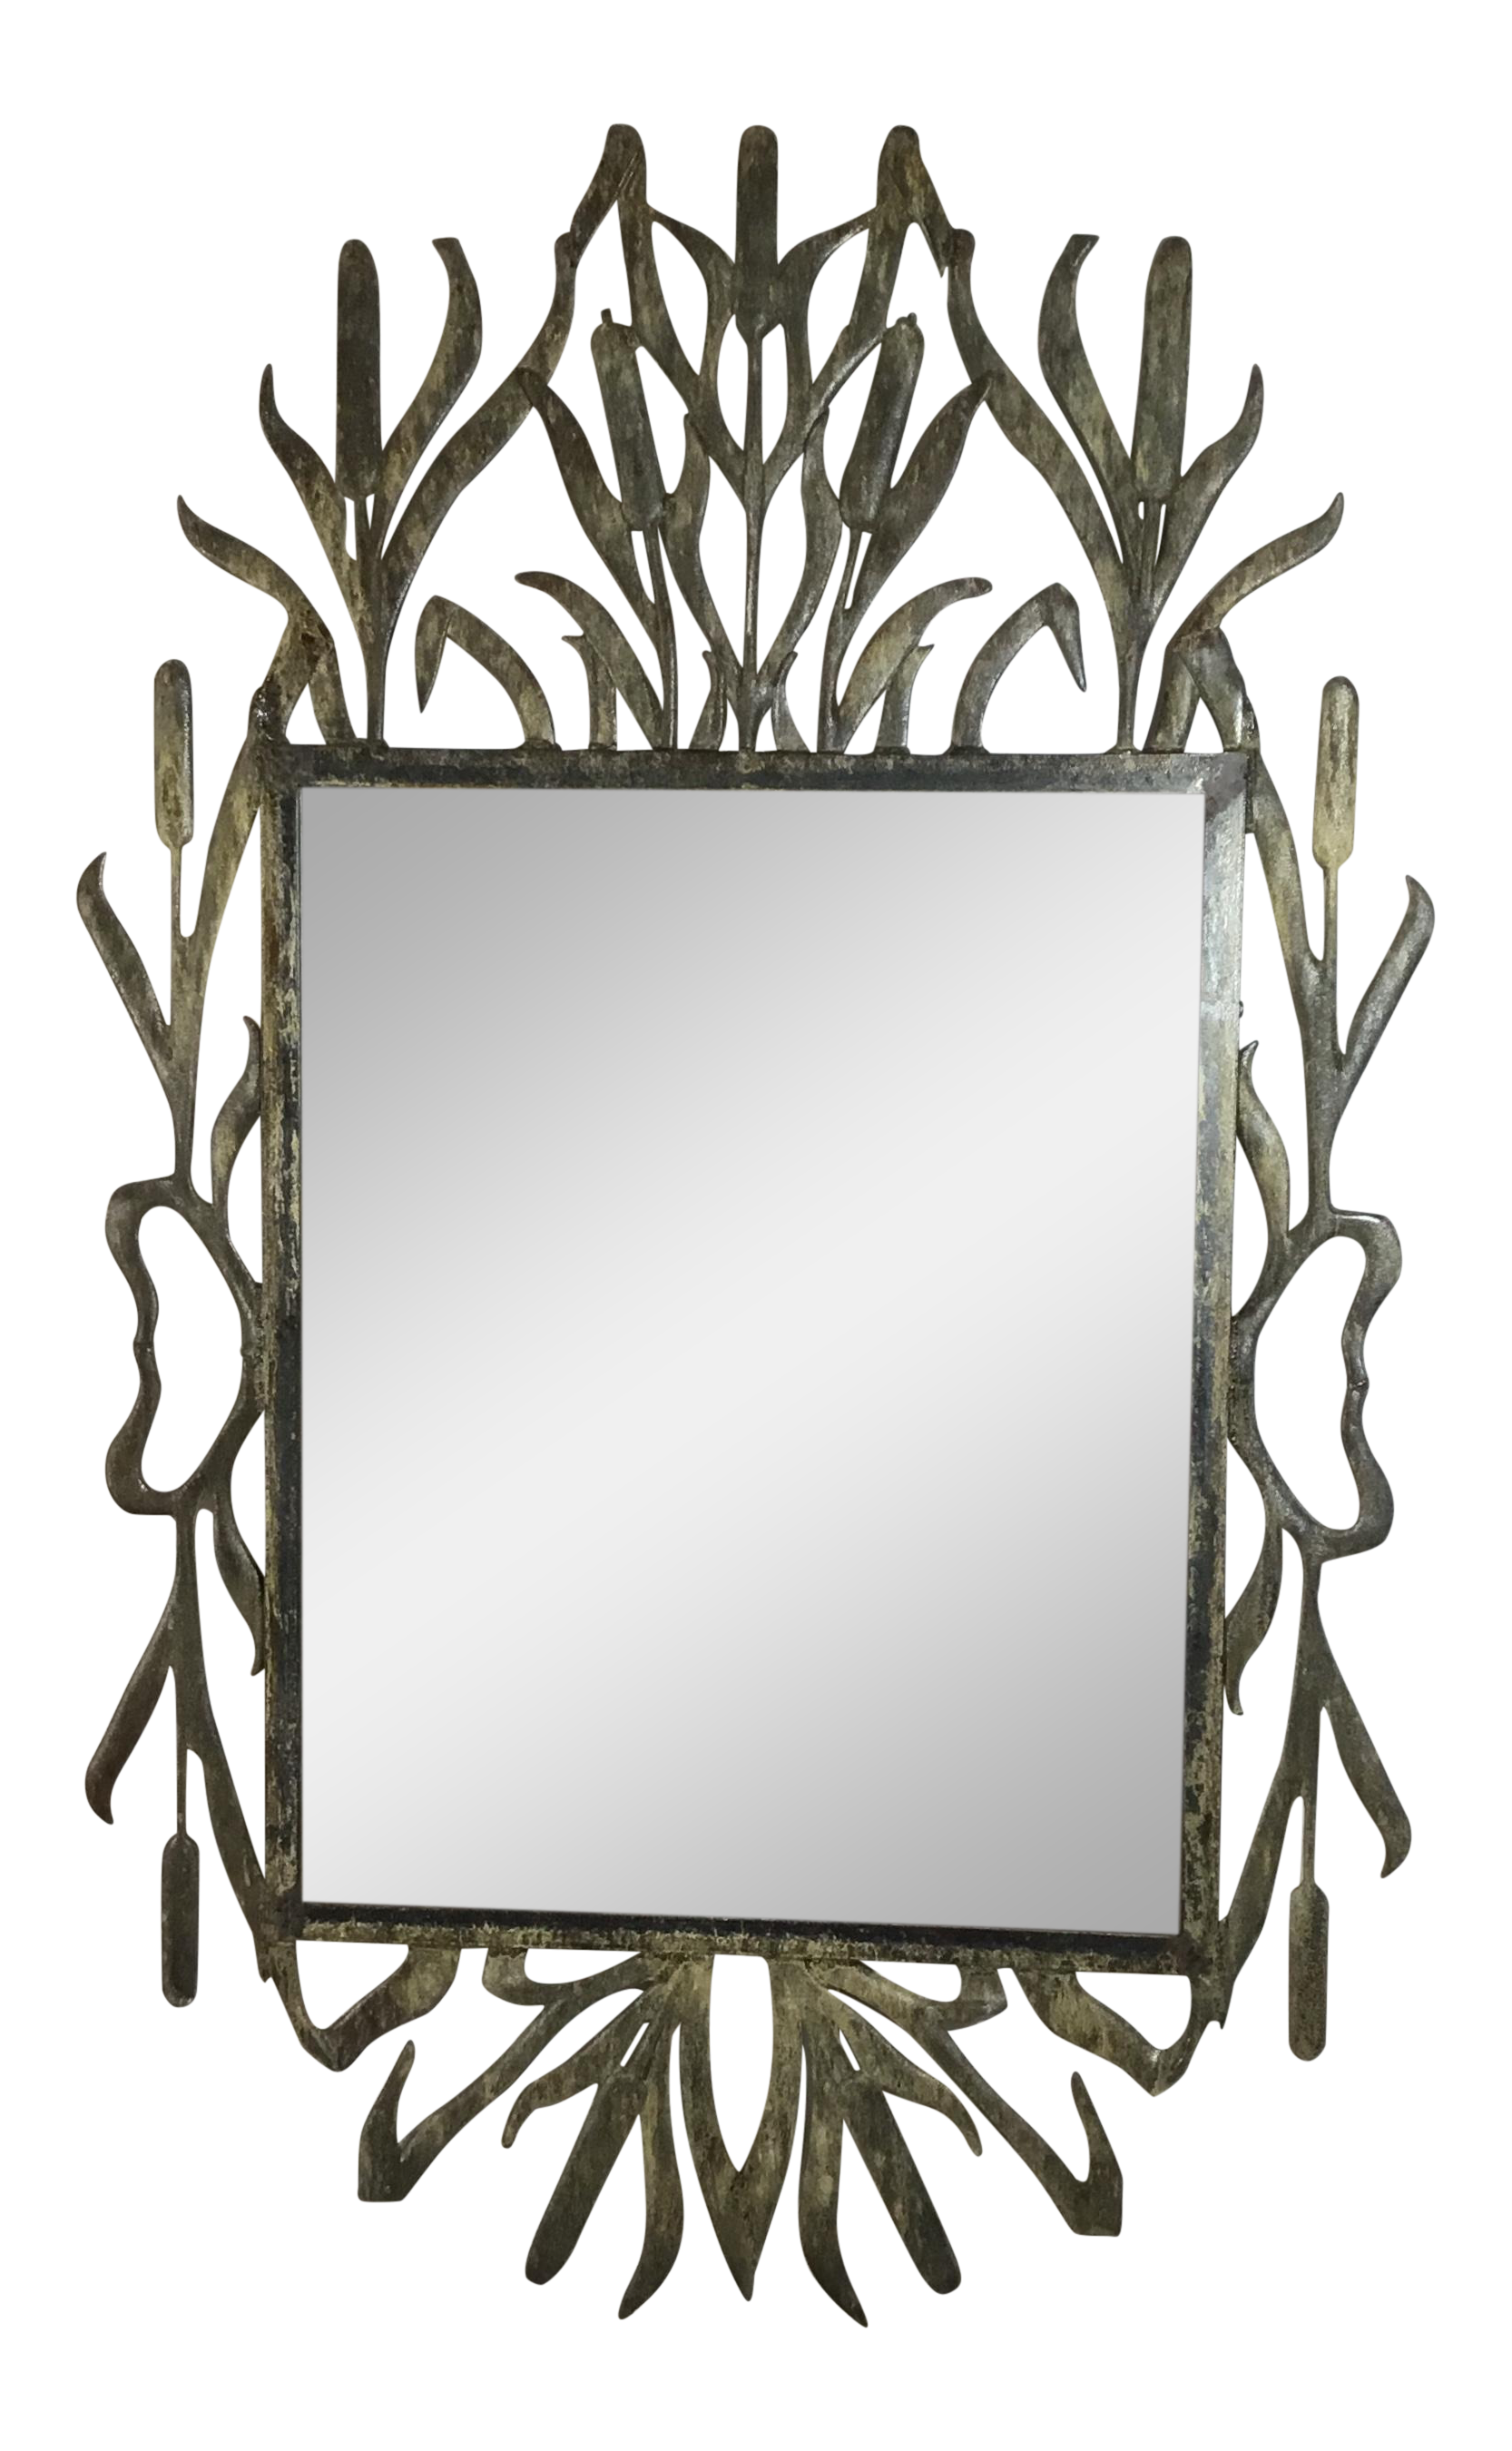 Makeup clipart rectangle mirror. Abstract hollywood regency iron